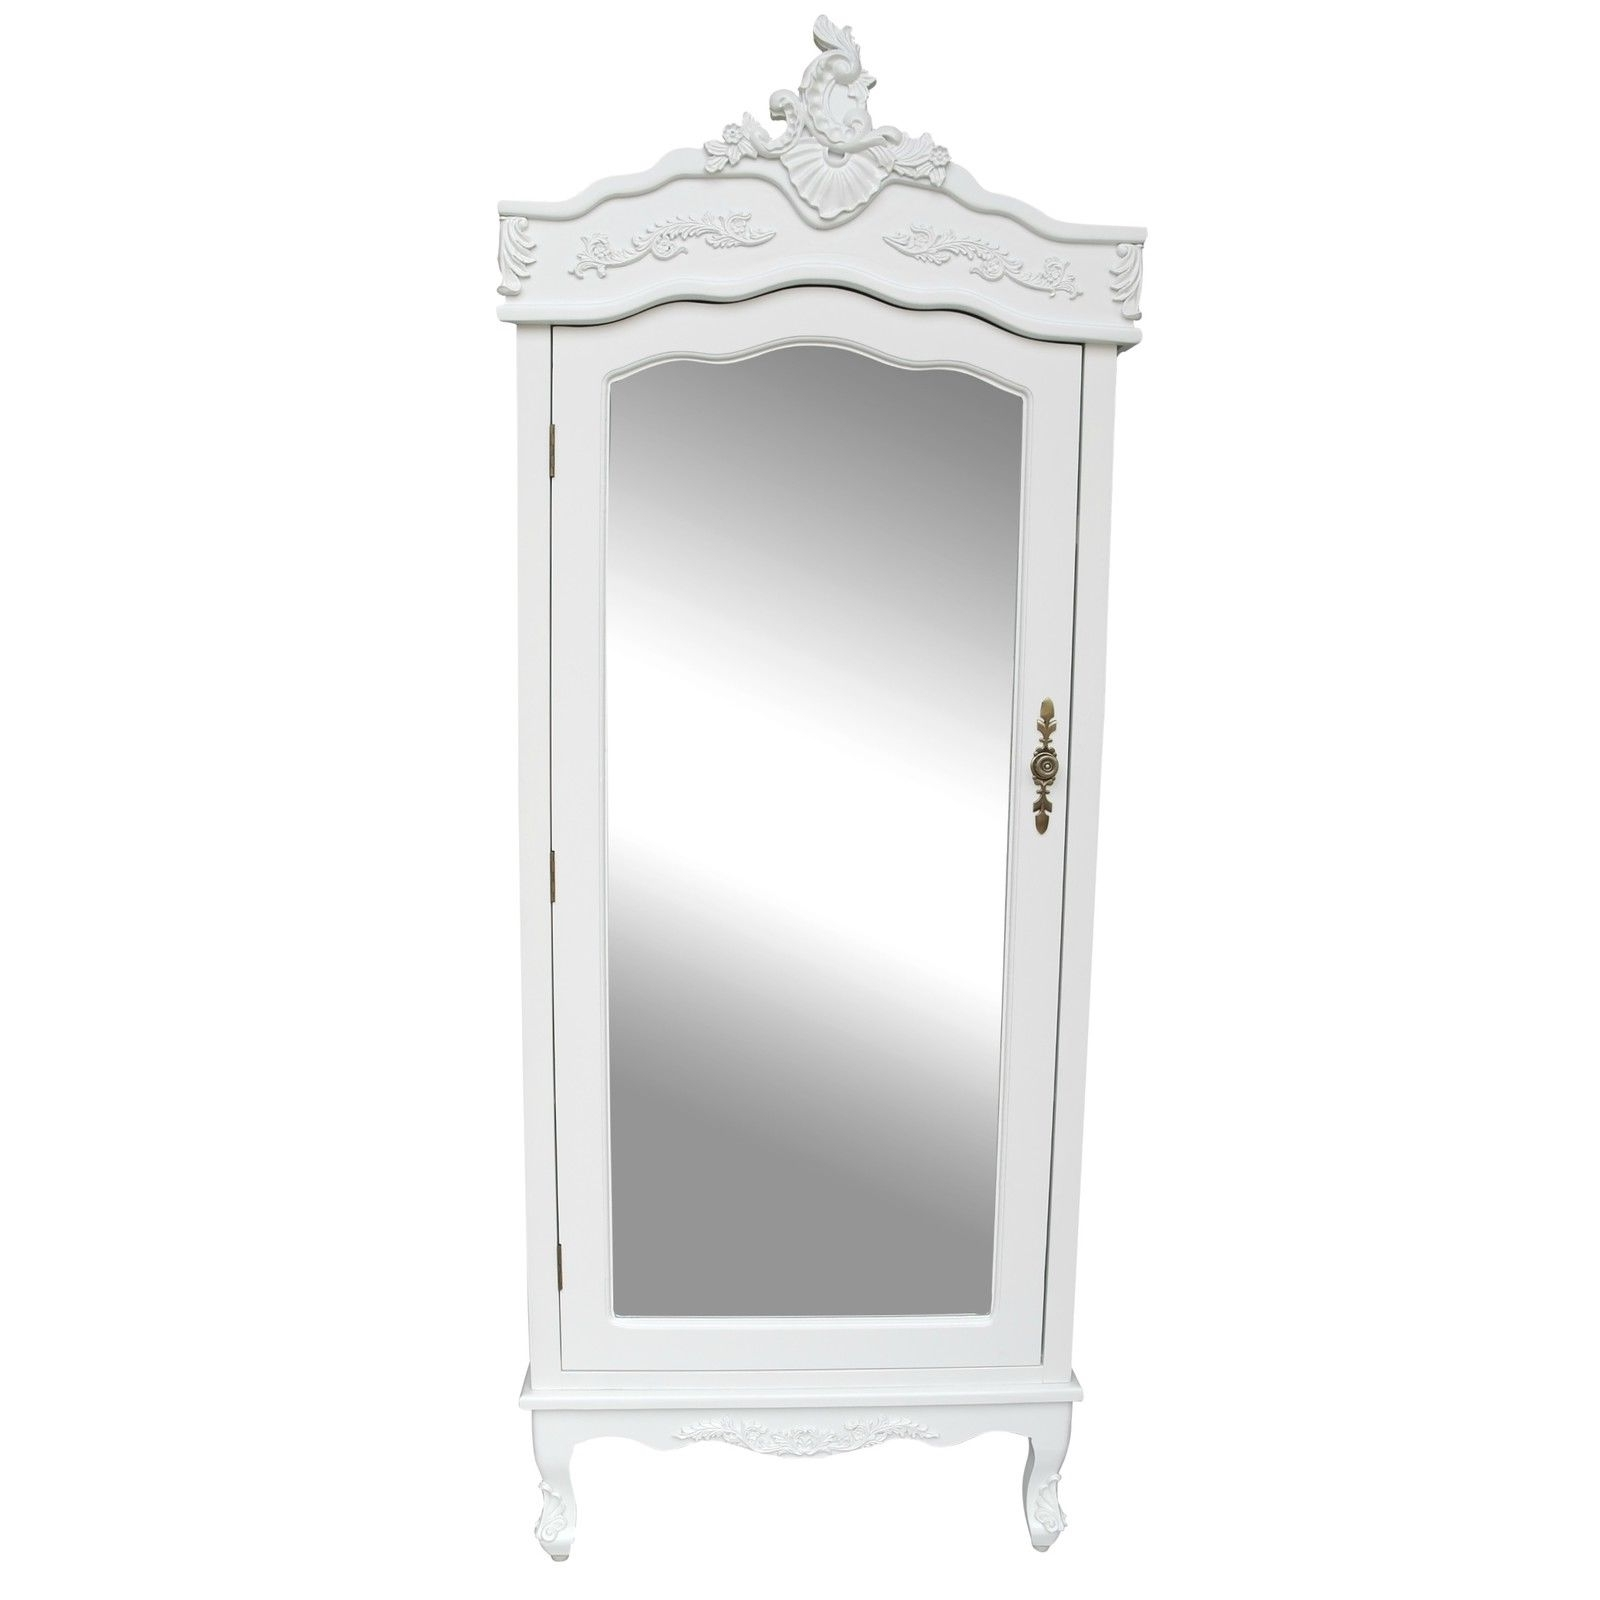 Newest French White Single Door Armoire With Mirrored Door Furniture – La In Single White Wardrobes With Mirror (View 5 of 15)